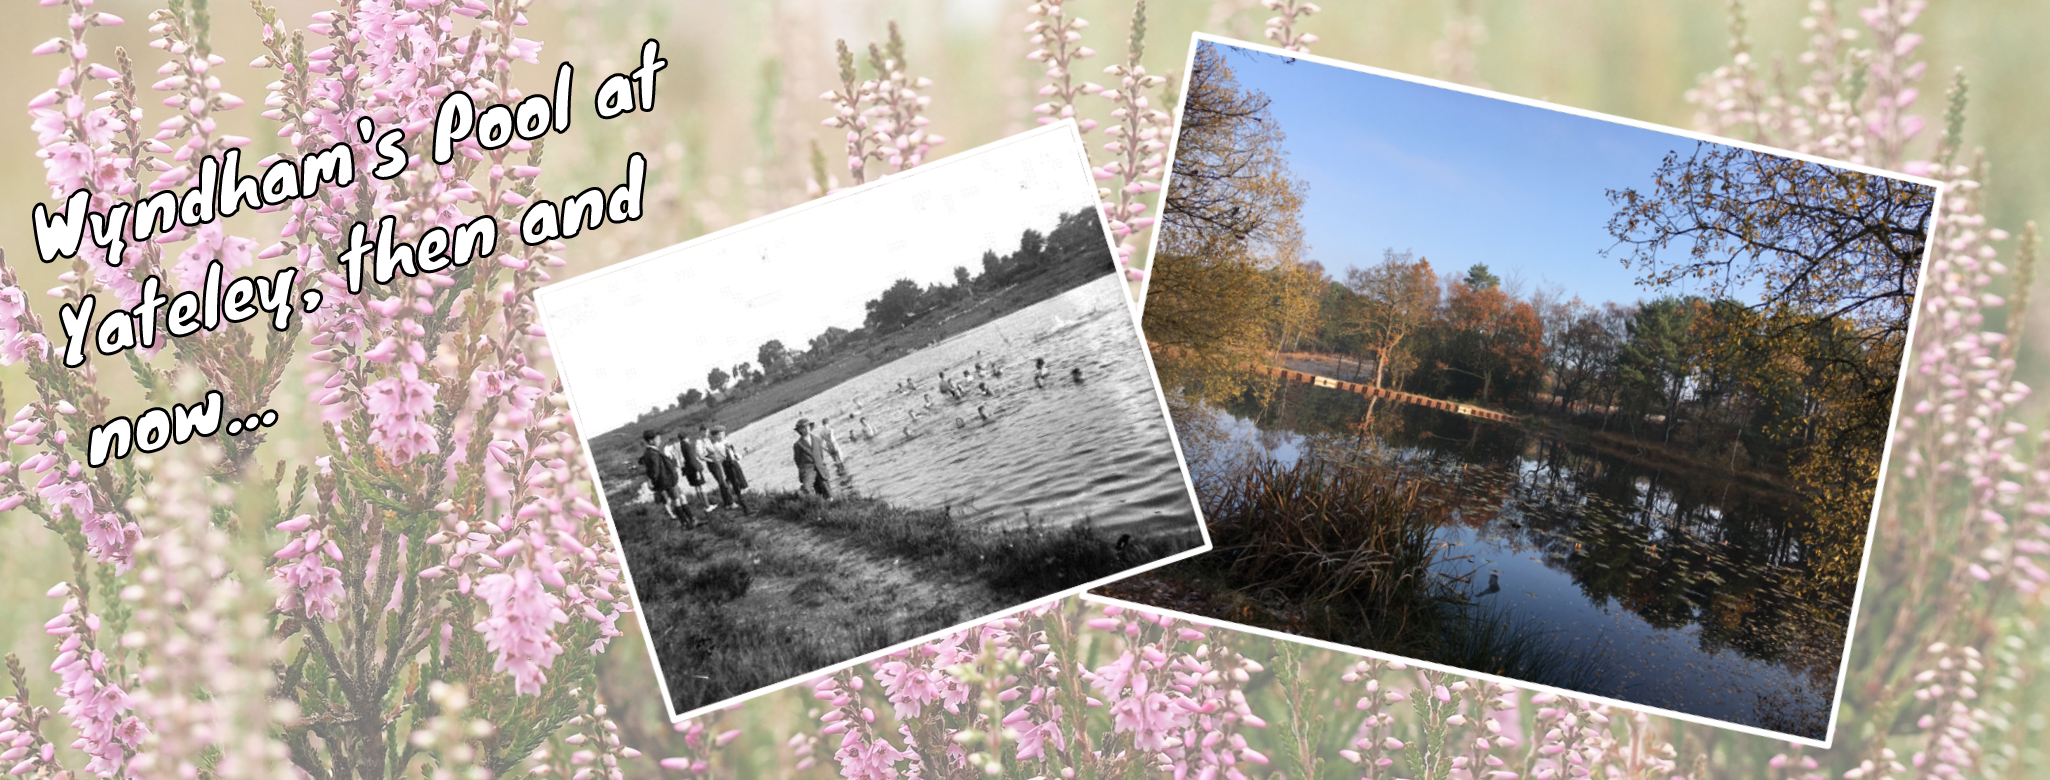 Historical photograph of Wyndham's Pool at Yateley Common compared to picture of the pool today